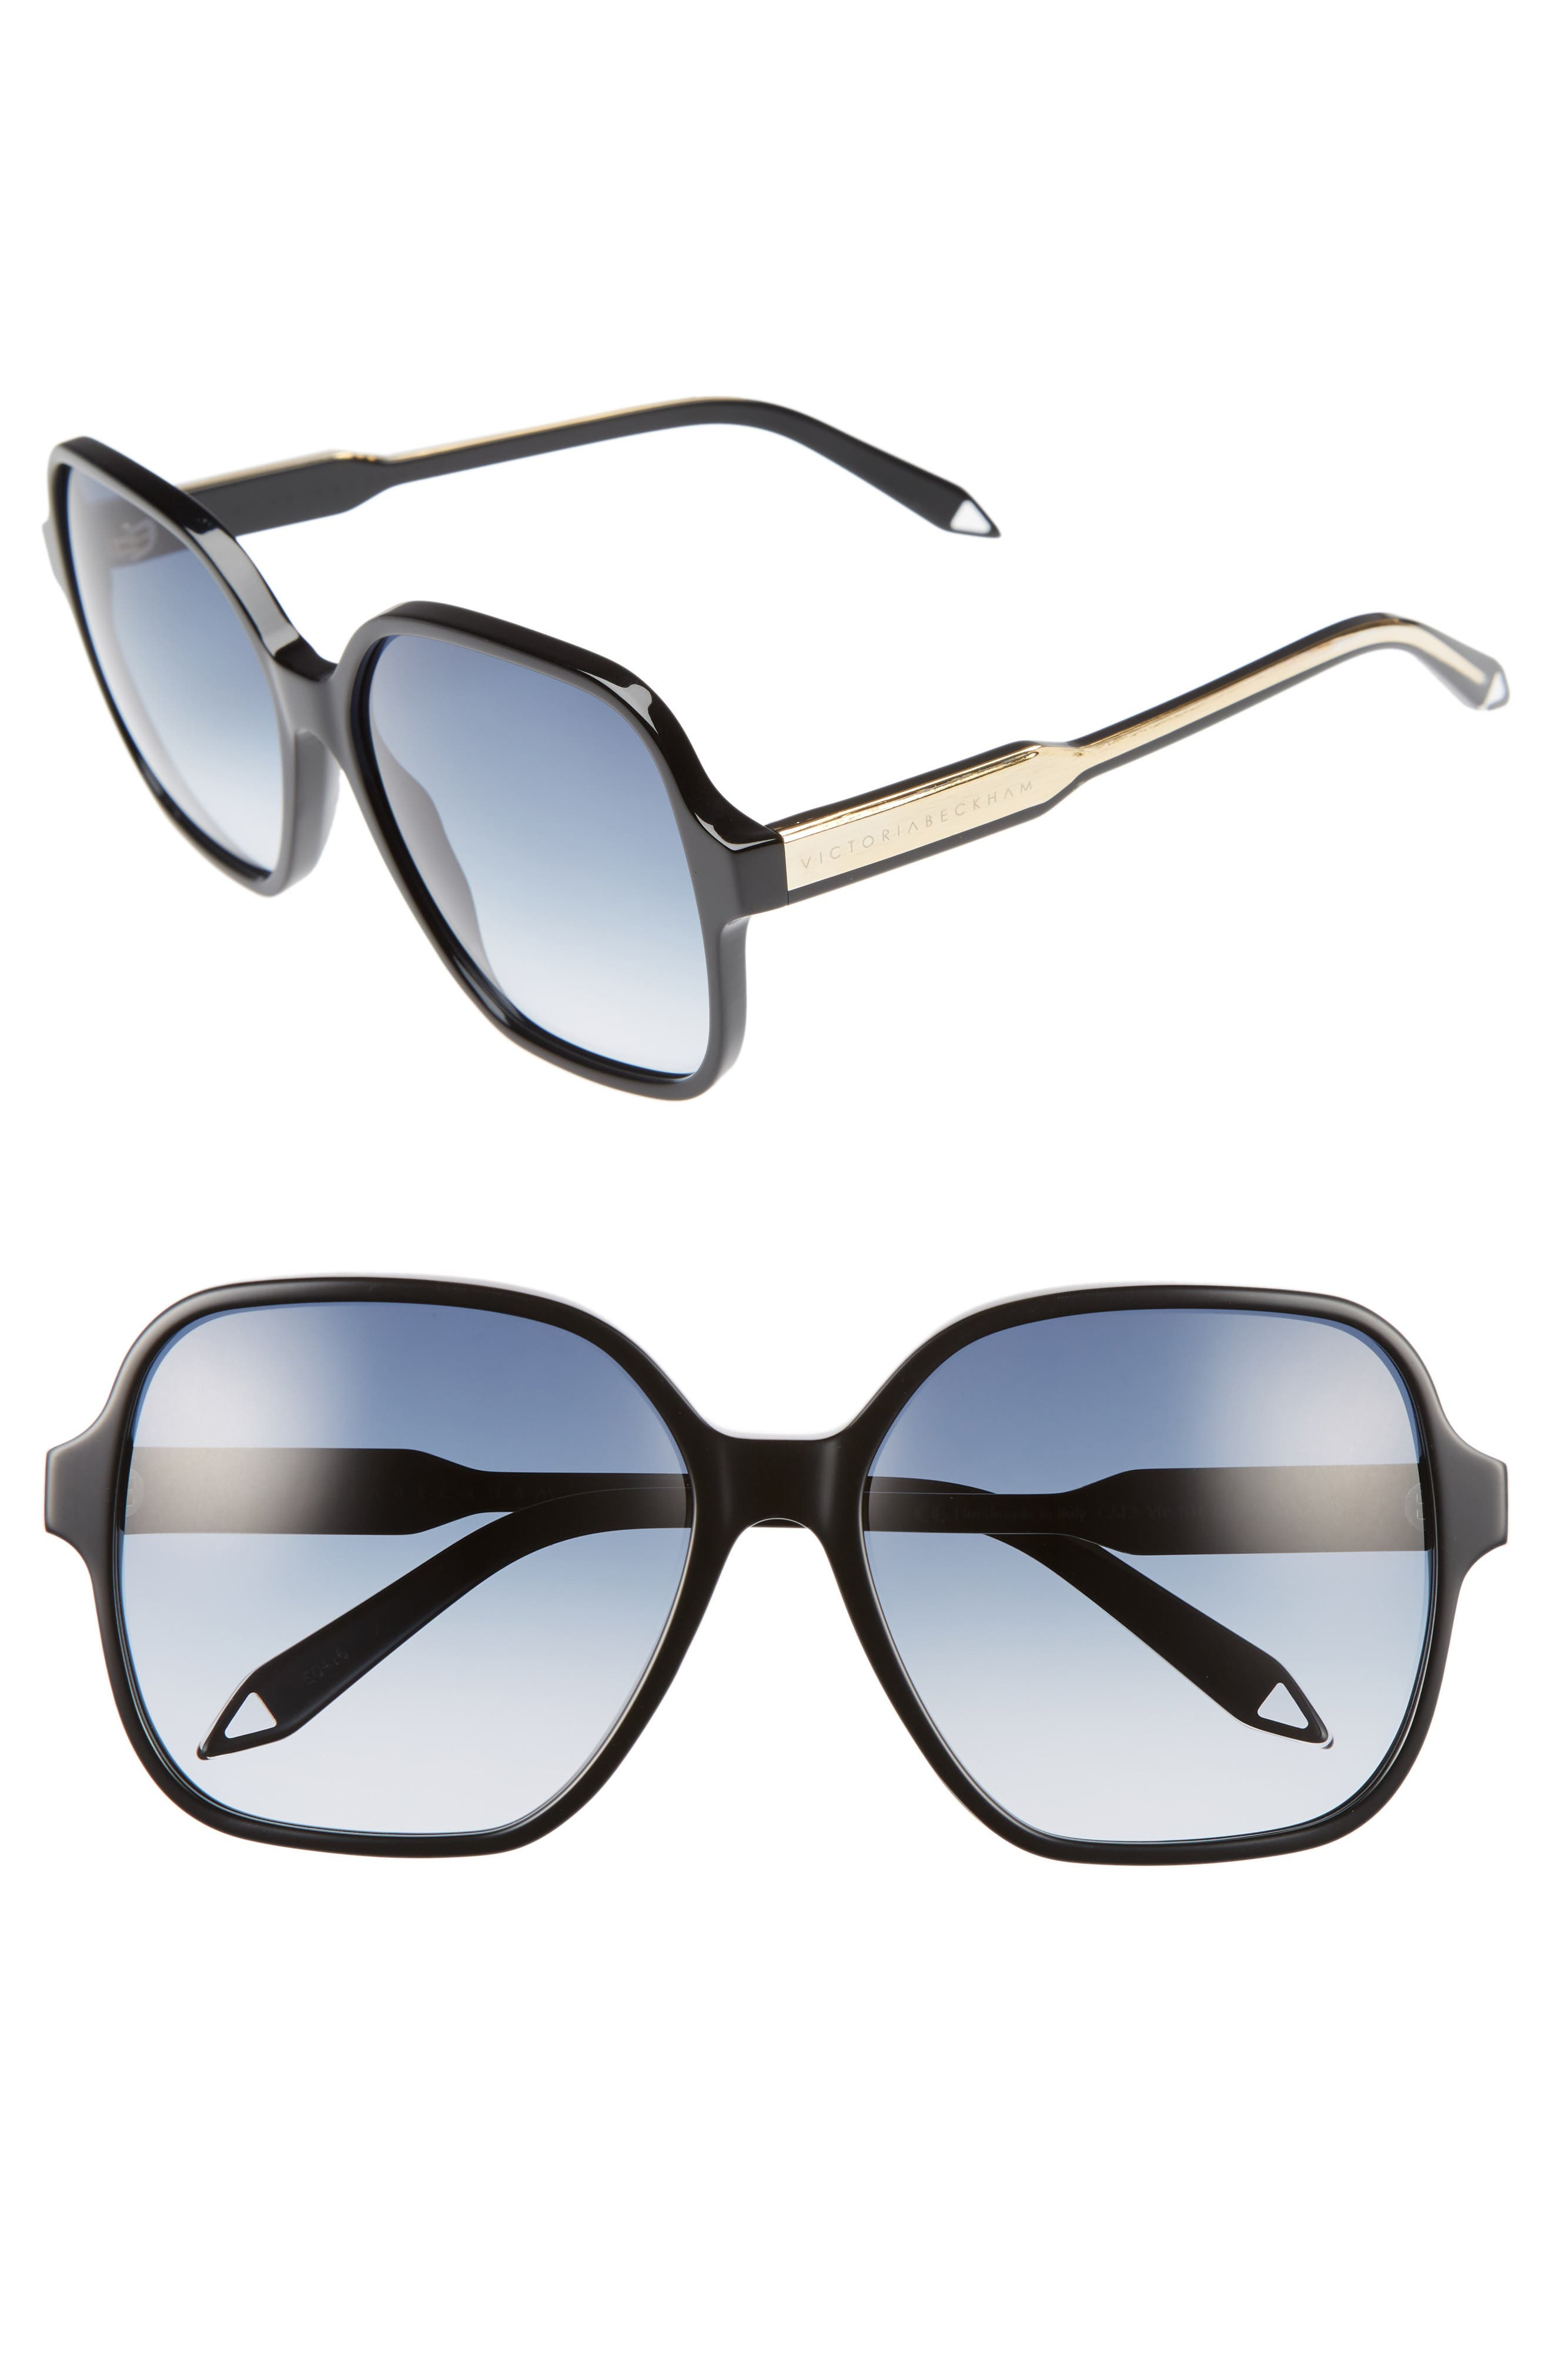 Iconic Square 59mm Sunglasses,                             Main thumbnail 1, color,                             Black/ Navy